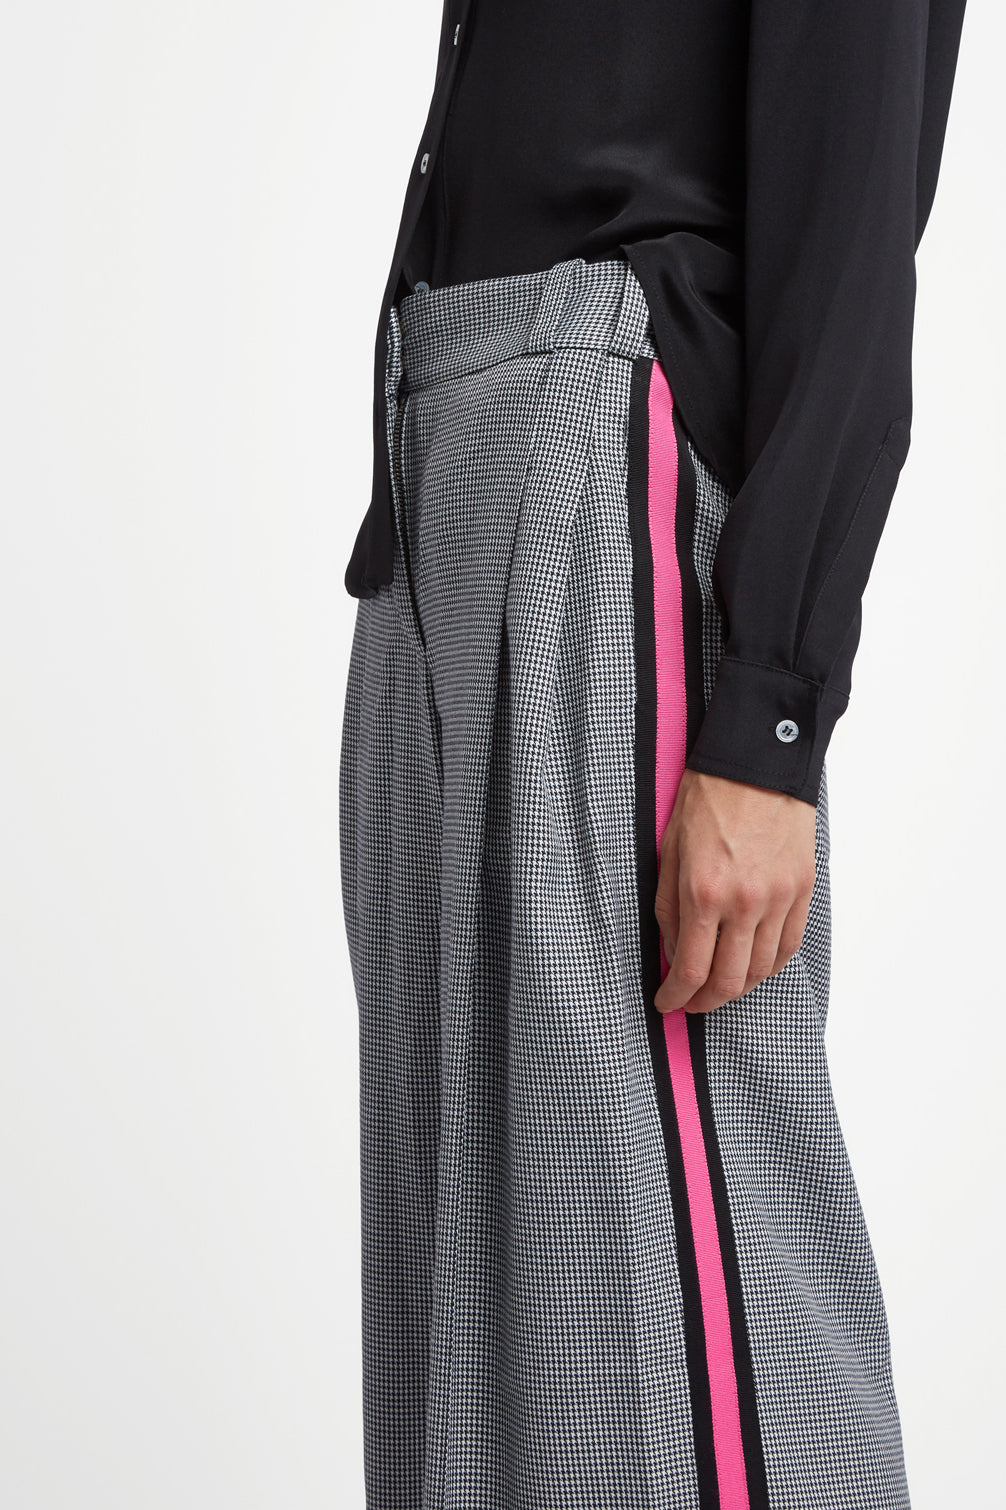 The Serena Trouser - Black, White & Shocking Pink Dogstooth Cotton - SERENA BUTE